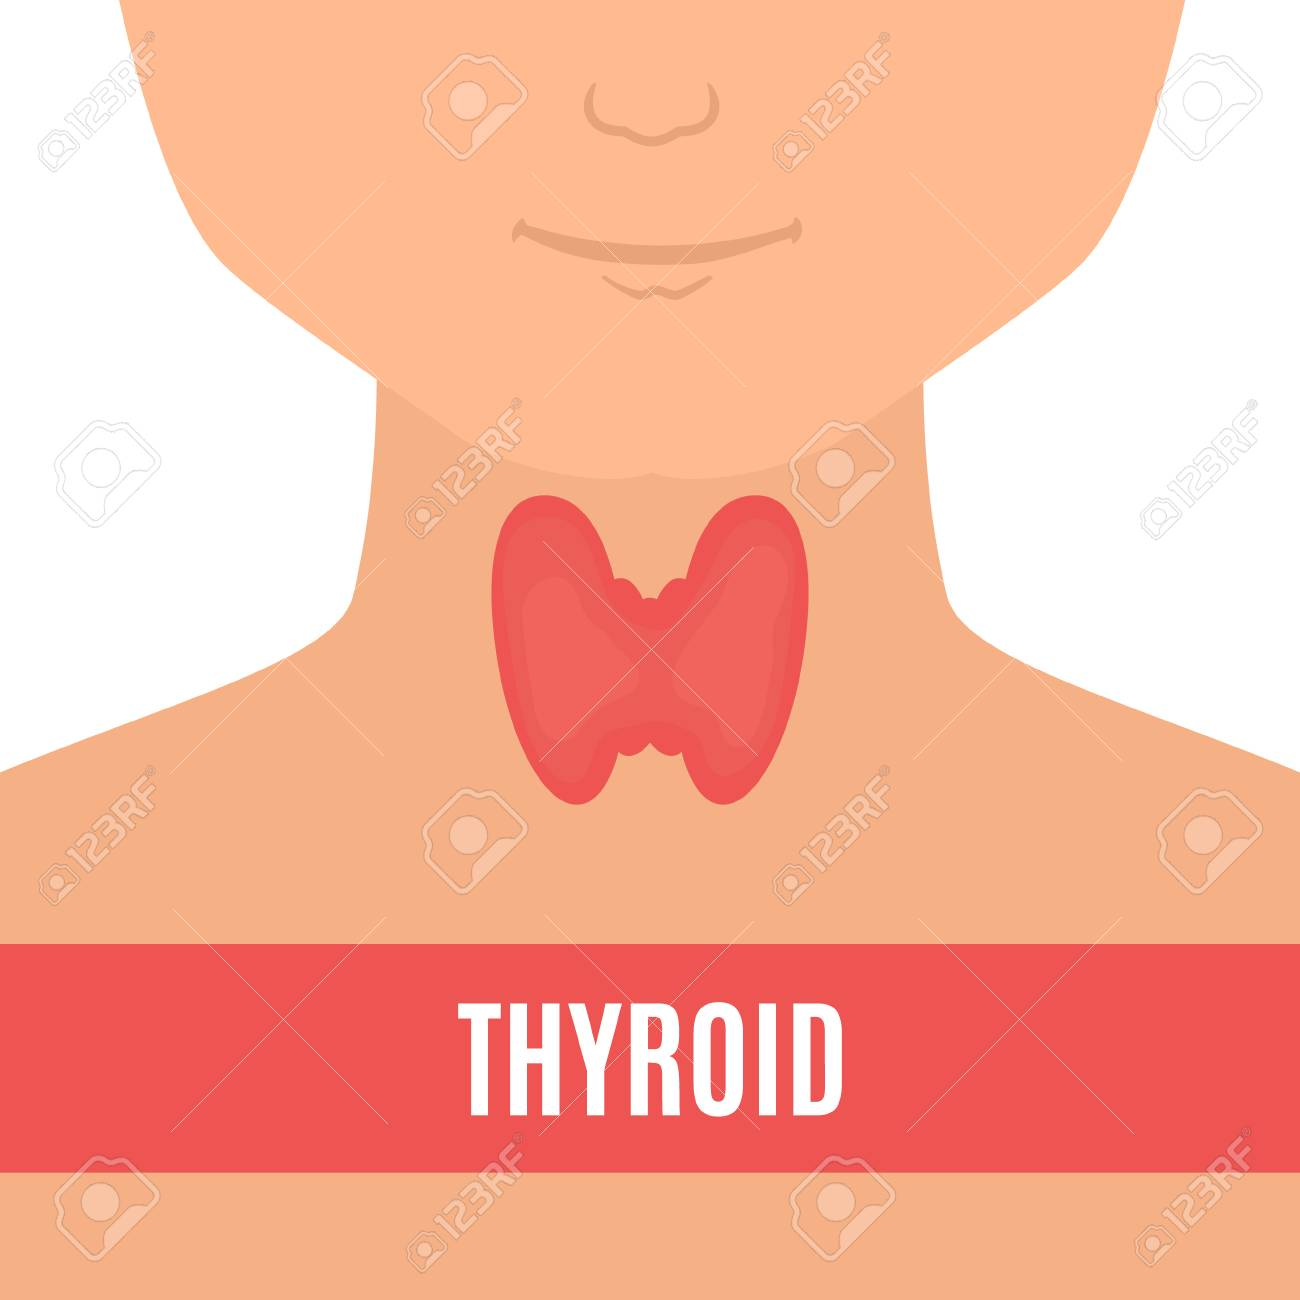 Thyroid Gland On A Silhouette Of A Man Body Anatomy Sign Human